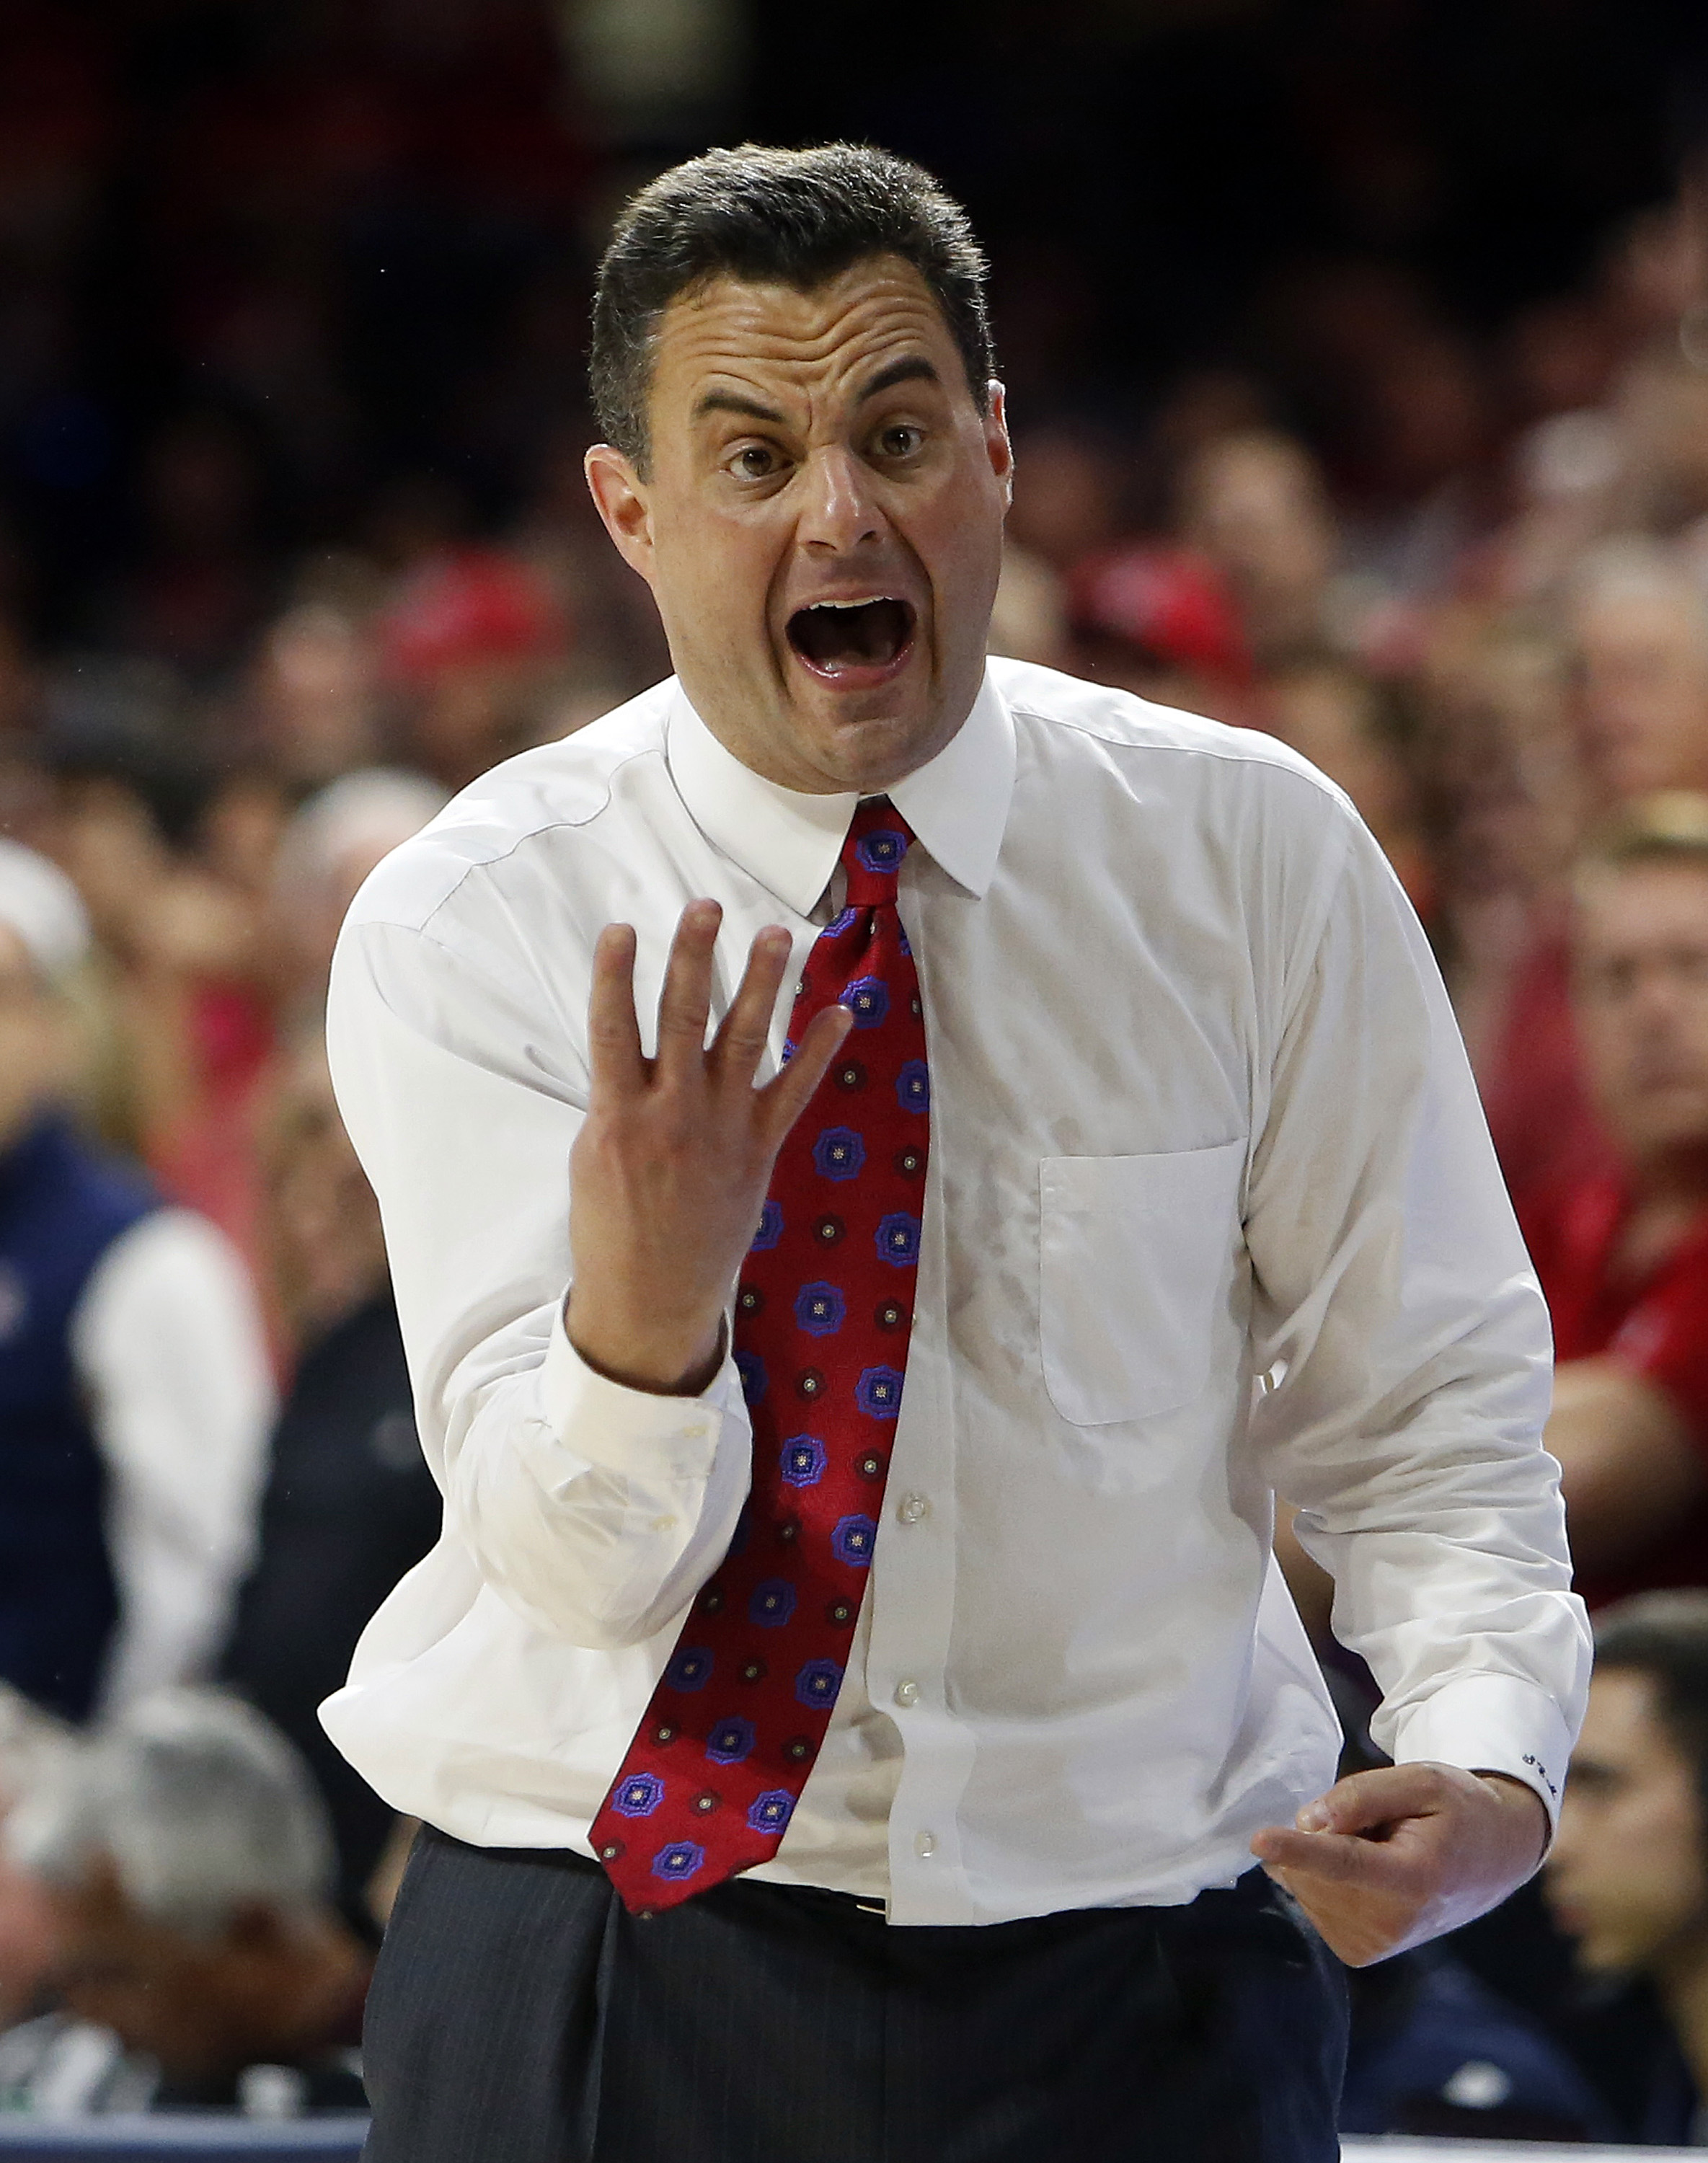 Arizona head coach Sean Miller reacts to a foul call during the second half of an NCAA college basketball game against California, Thursday, March 3, 2016, in Tucson, Ariz. (AP Photo/Rick Scuteri)